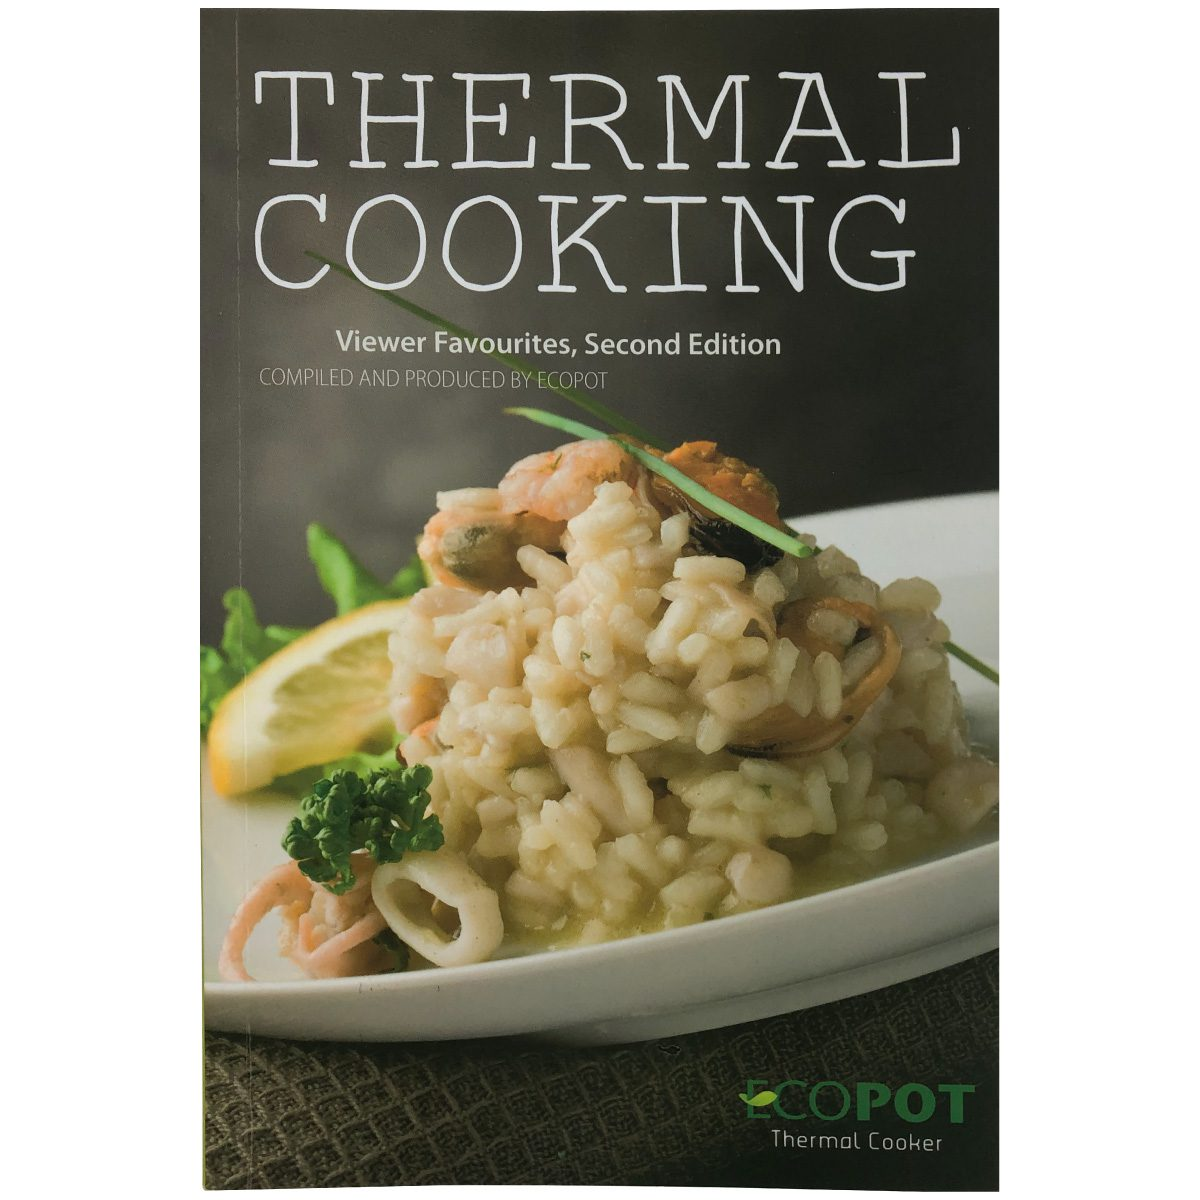 Thermal Cooking Cookbook